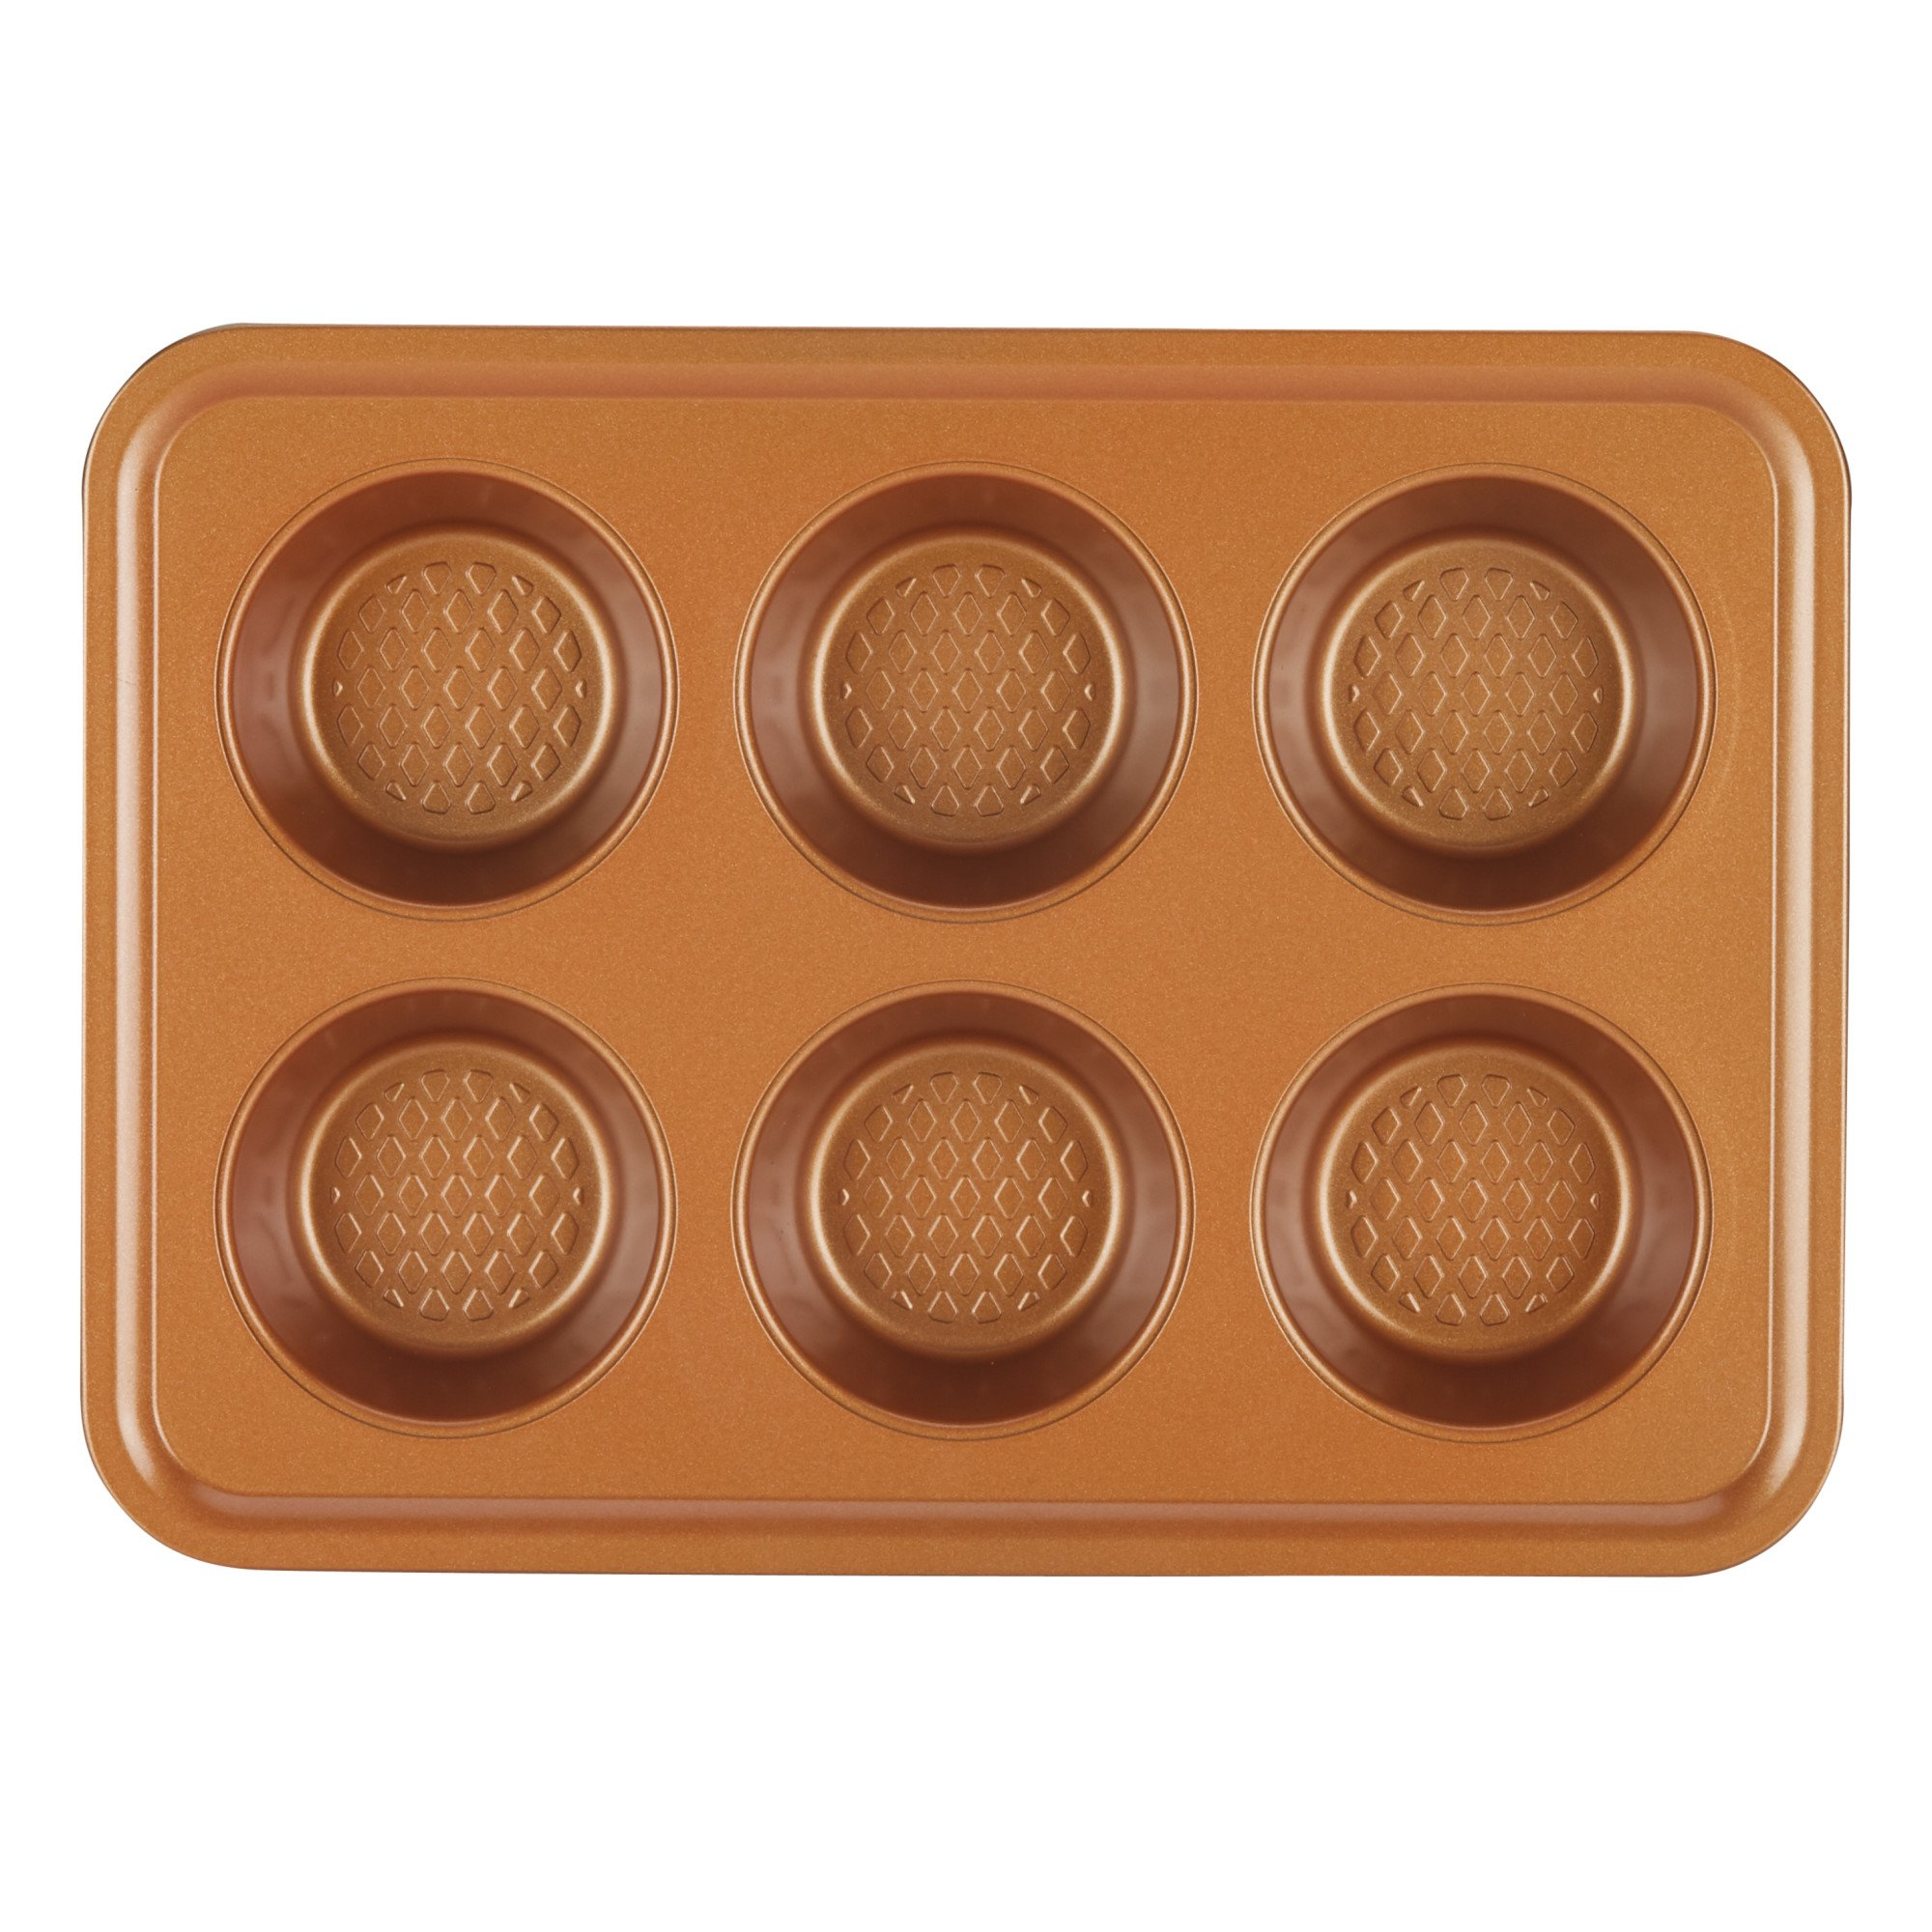 Toaster Oven Baking Set, Copper, 4-Piece-Bakeware Sets 3.24